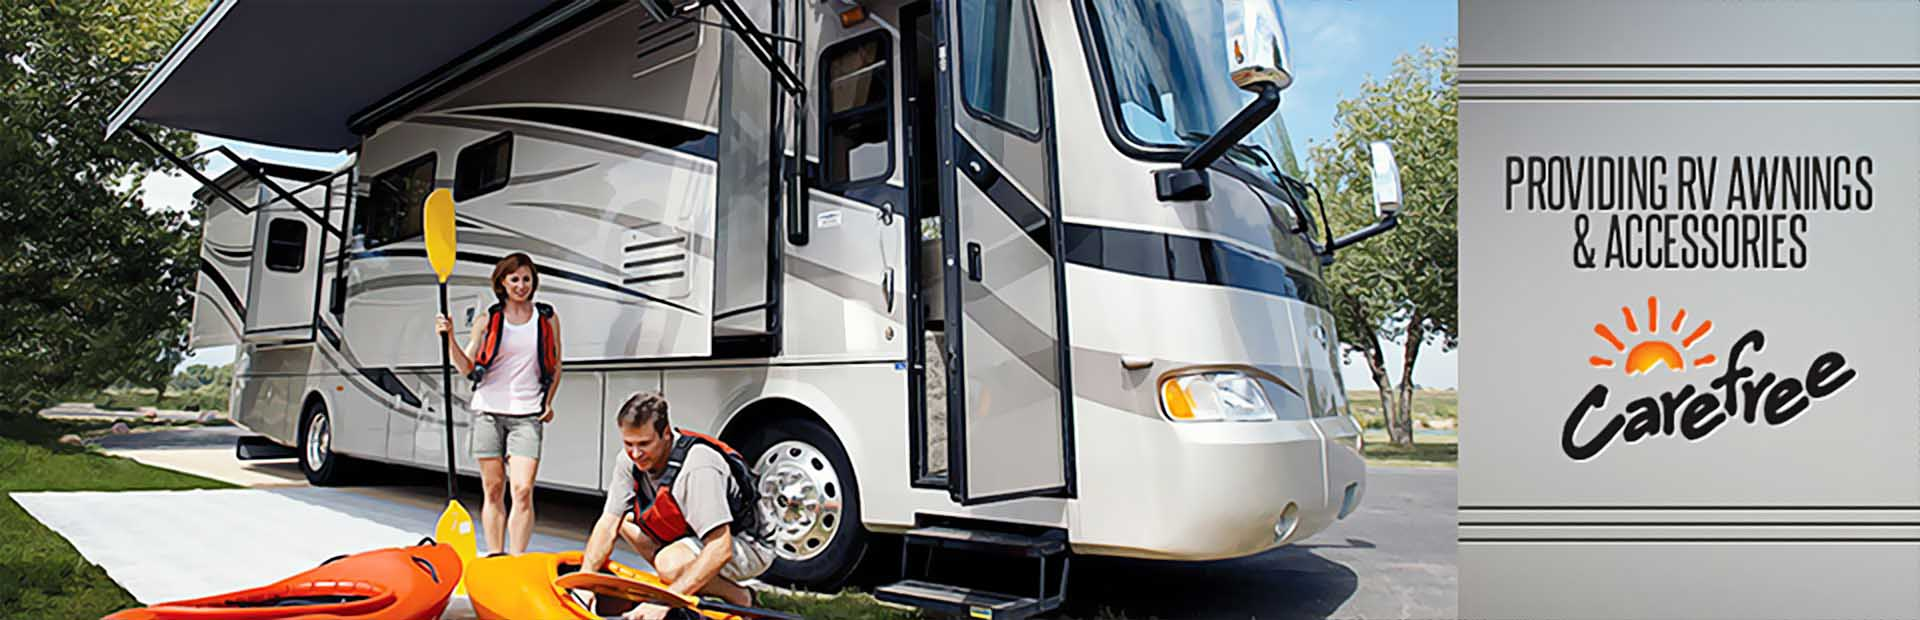 Carefree of Colorado provides RV awnings and accessories. Contact us for details.